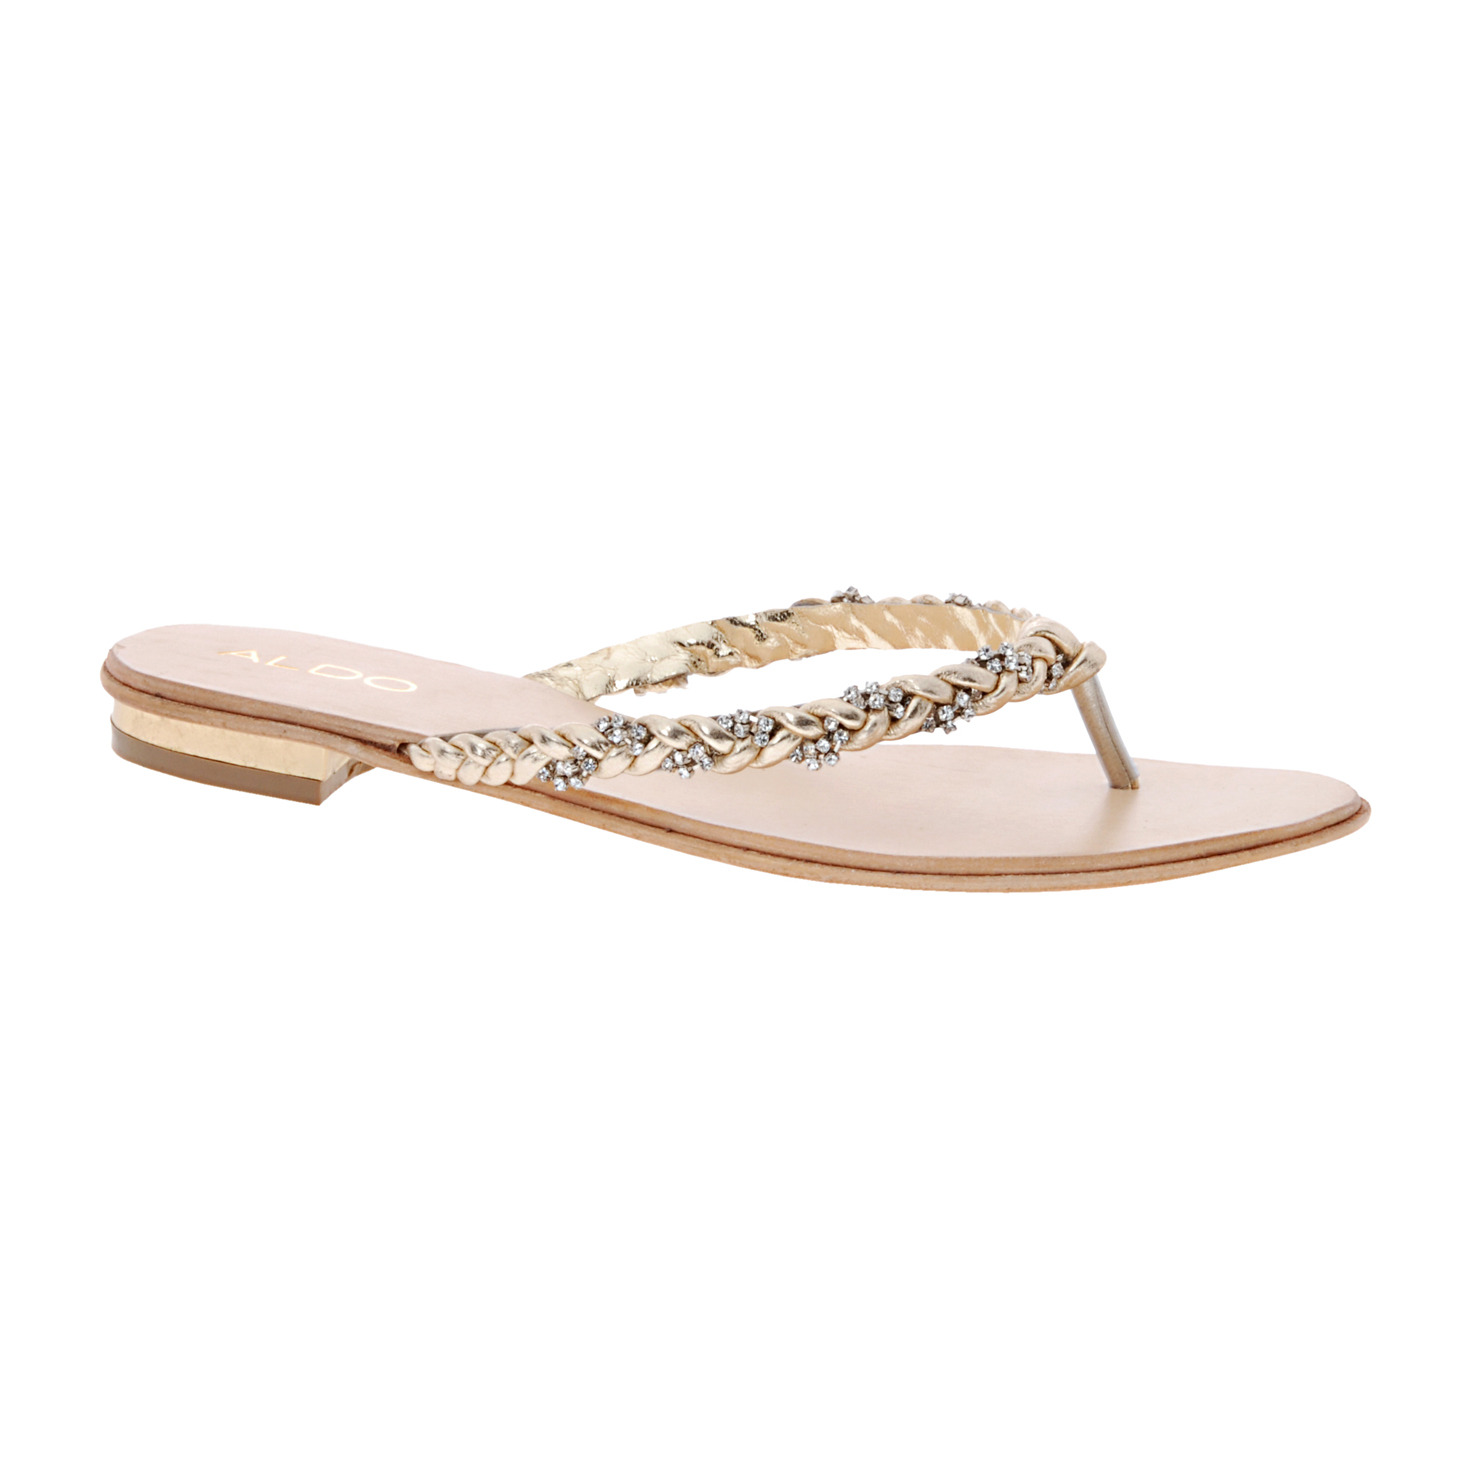 Style The New Black Shoesday Tuesday- Fancy Flip-Flops-6961